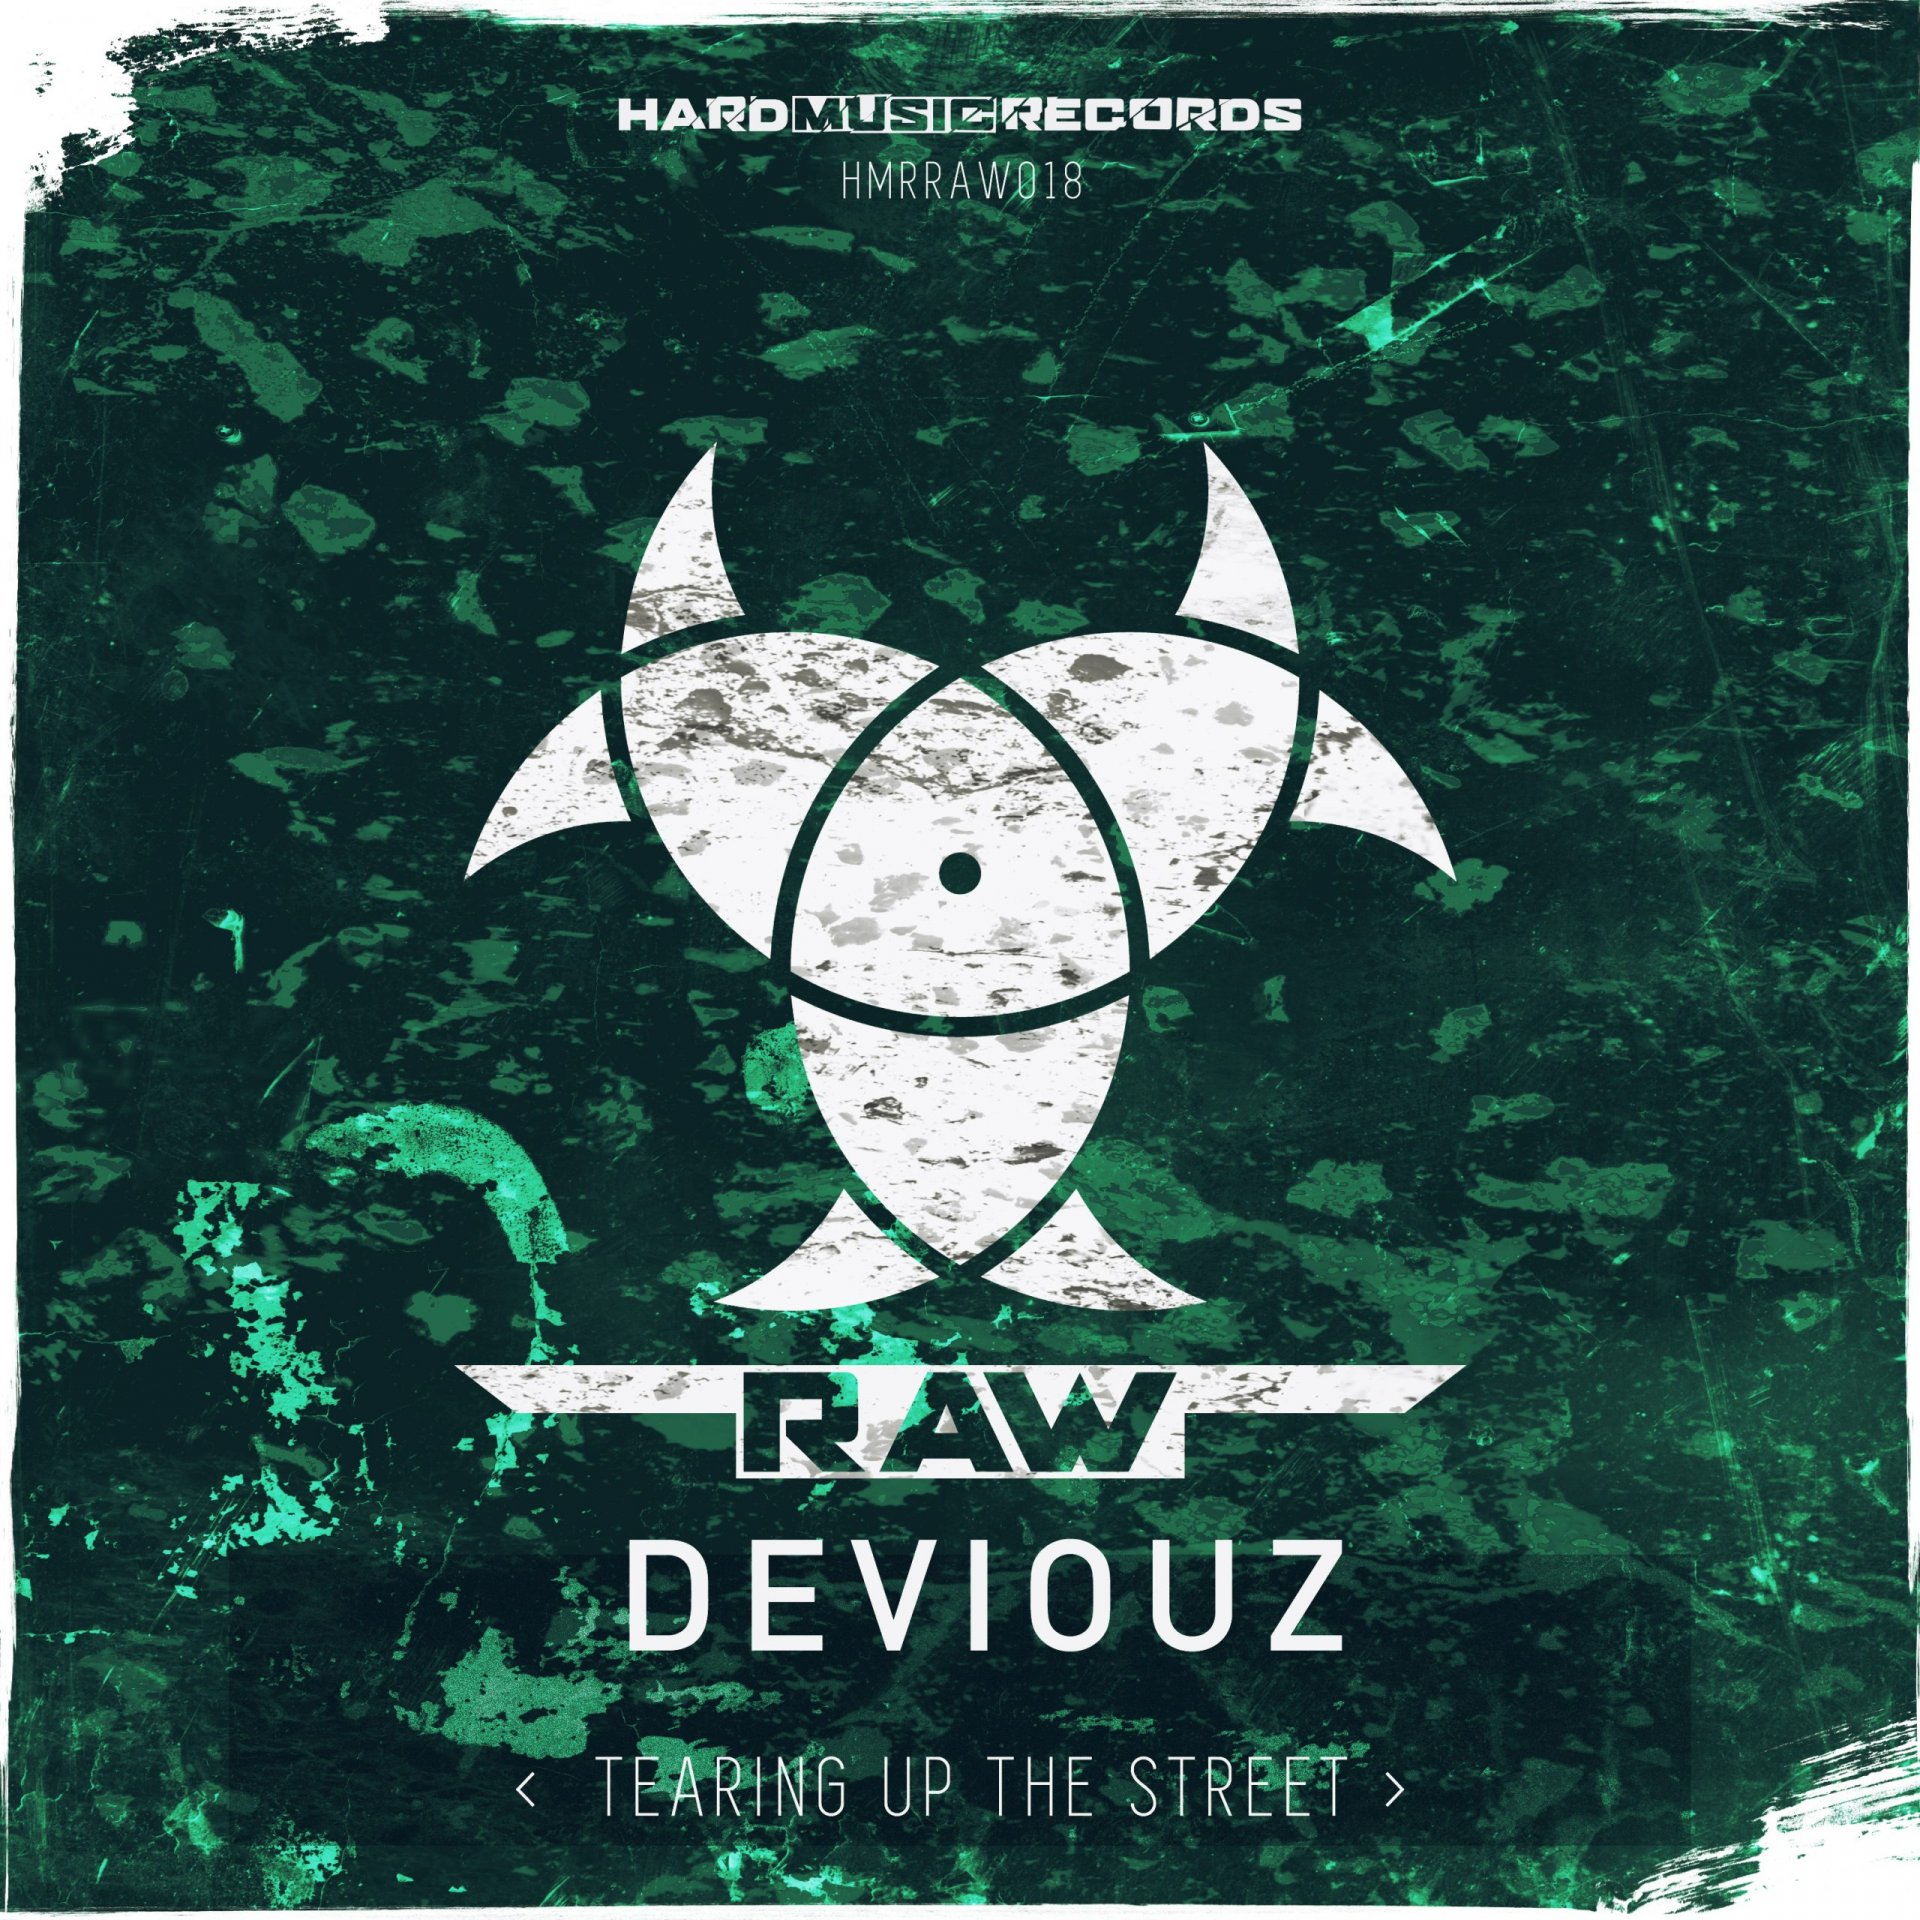 Tearing Up The Street by Deviouz